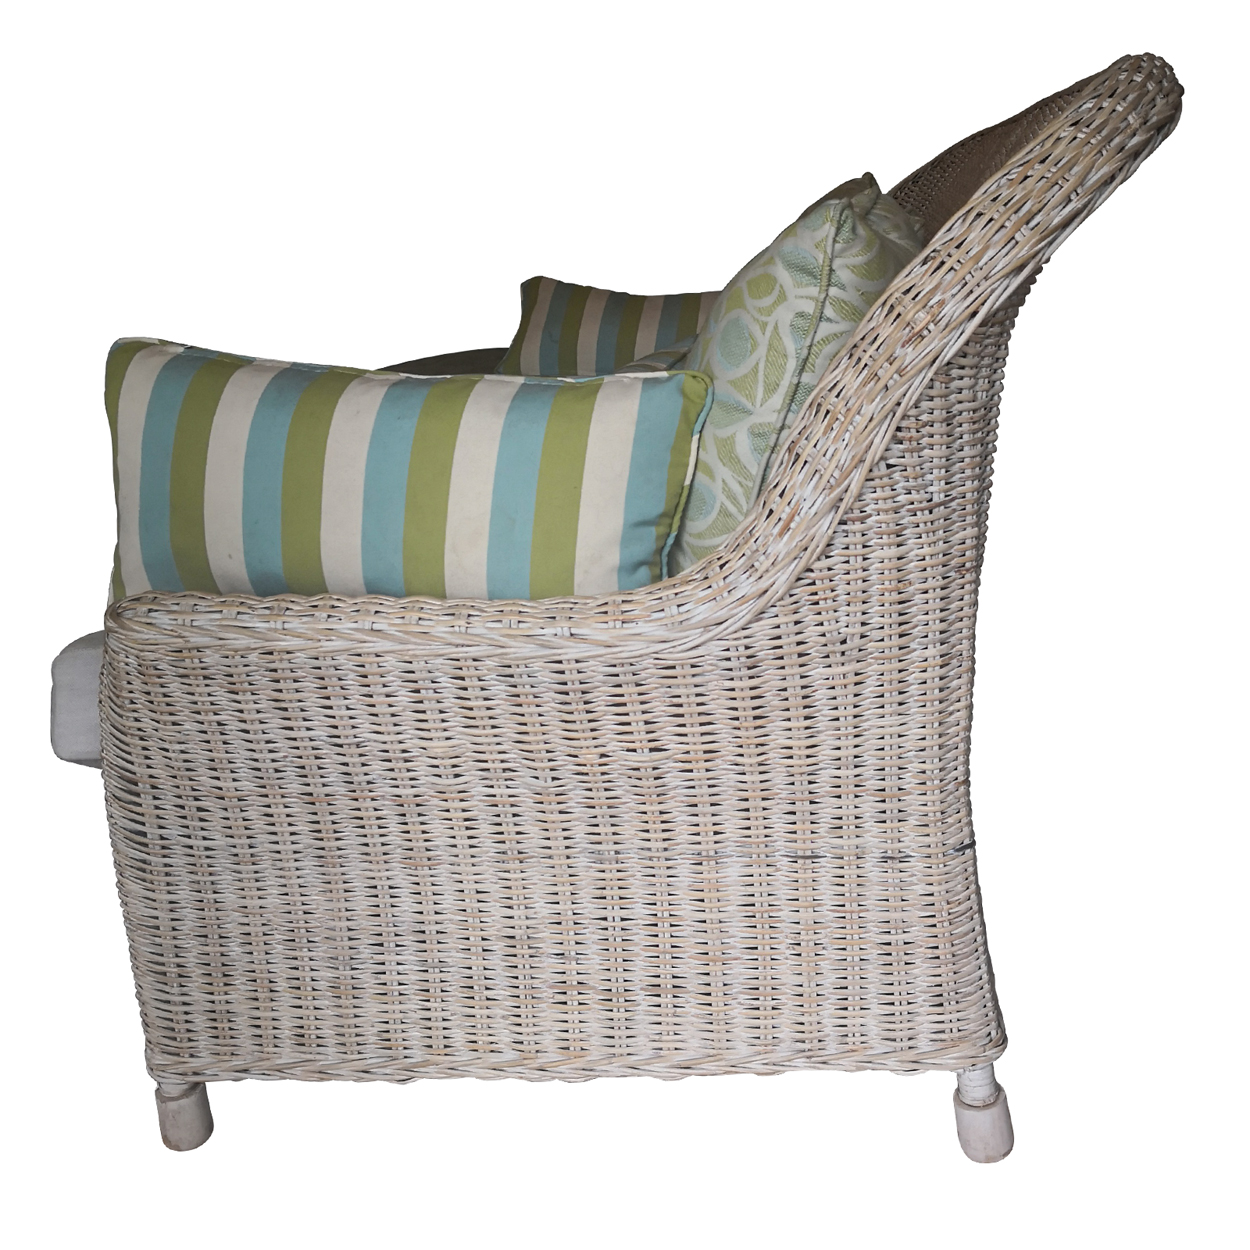 Two Design Lovers three piece cane sofa set with fabric cushions, armchair side